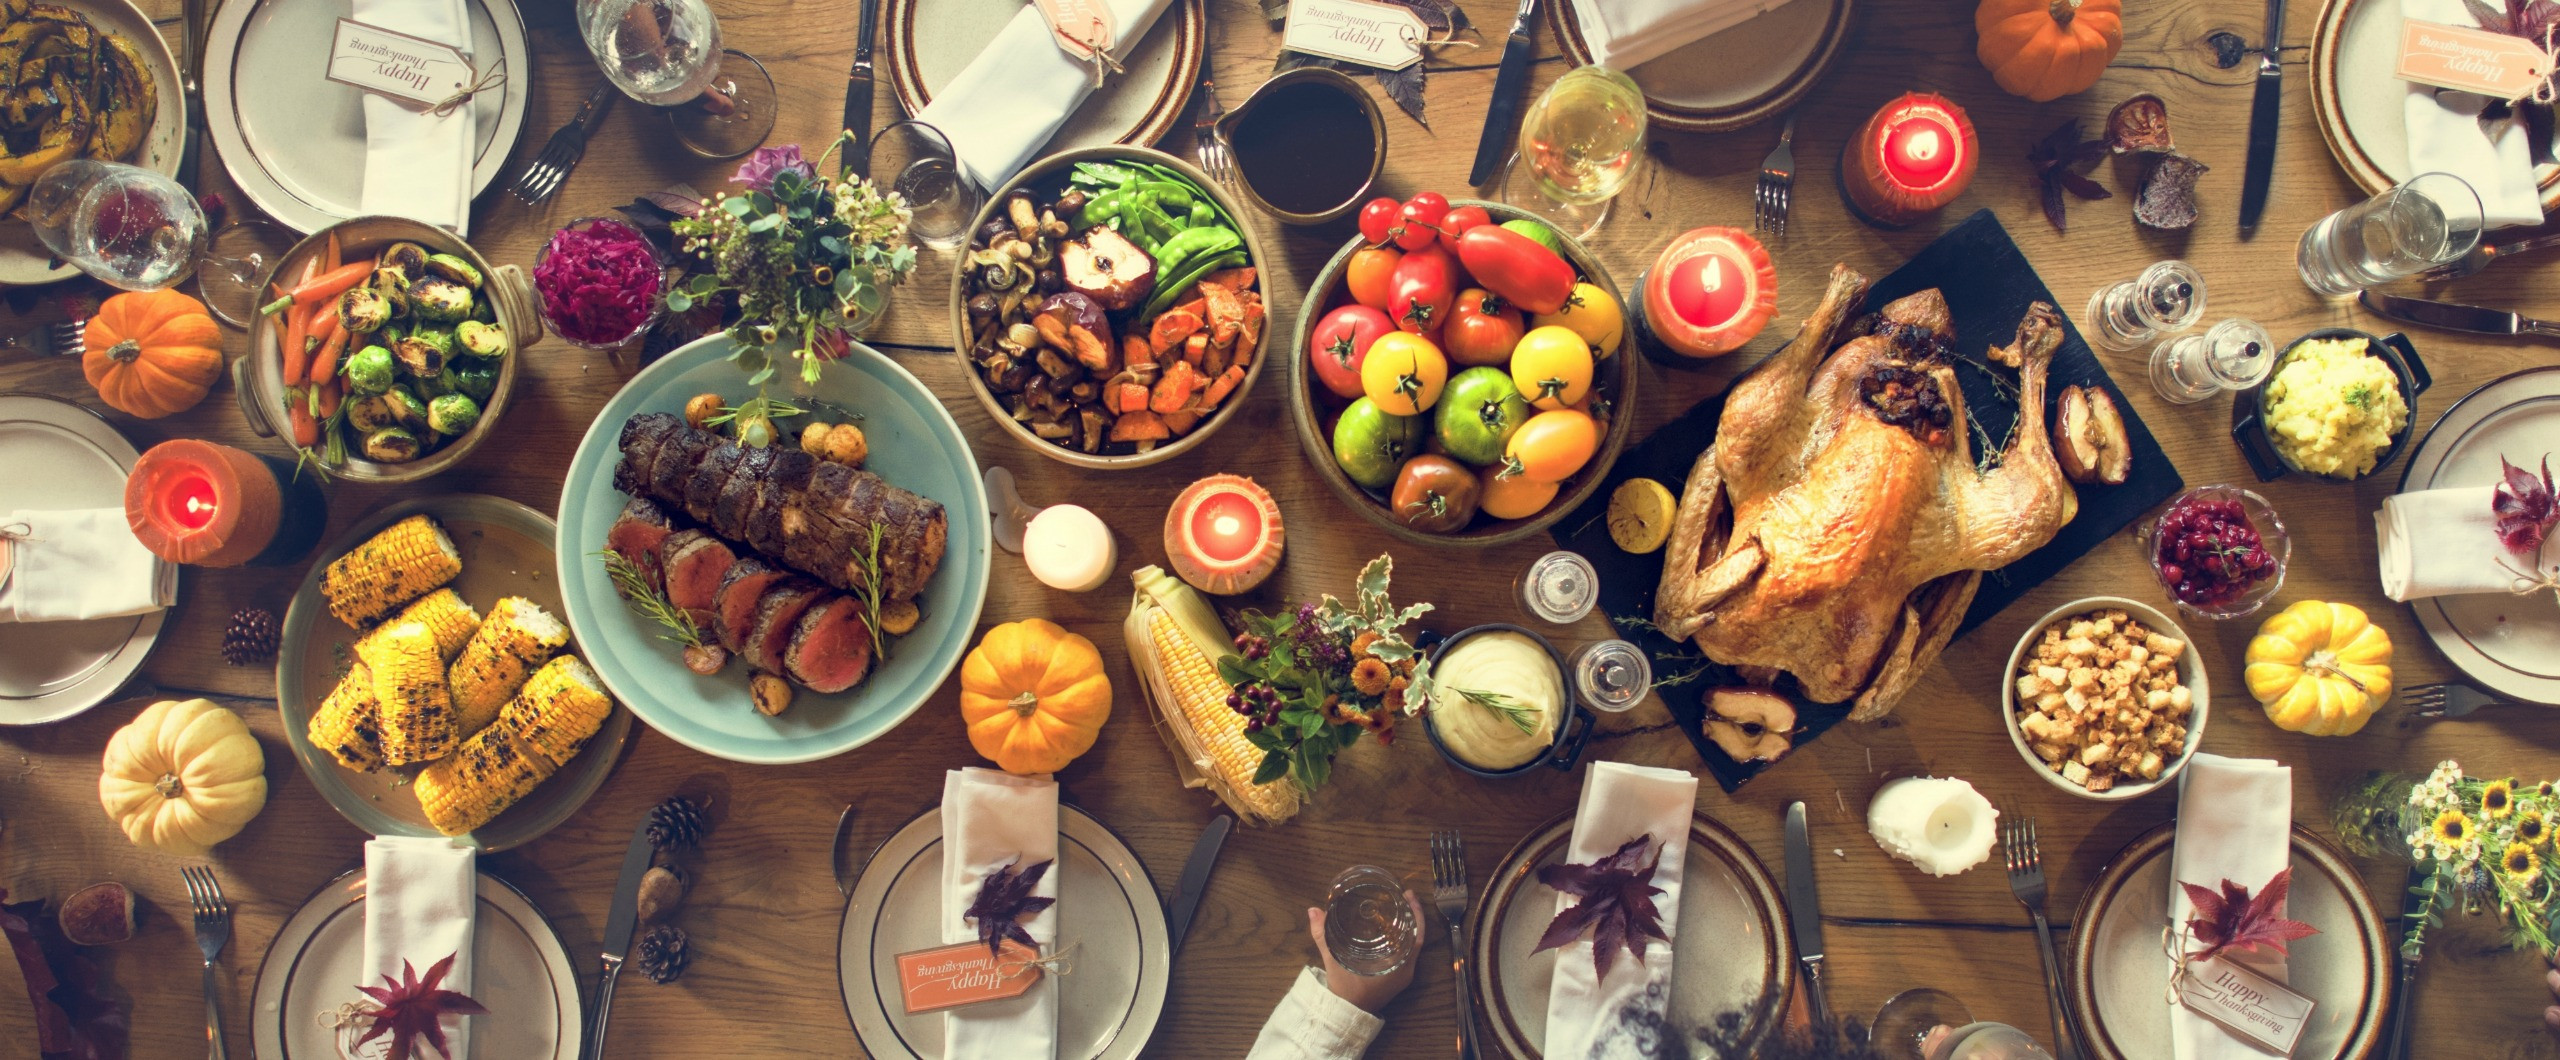 Prepared Thanksgiving Dinners 2019  As Thanksgiving Approaches Advice on Gluttony From